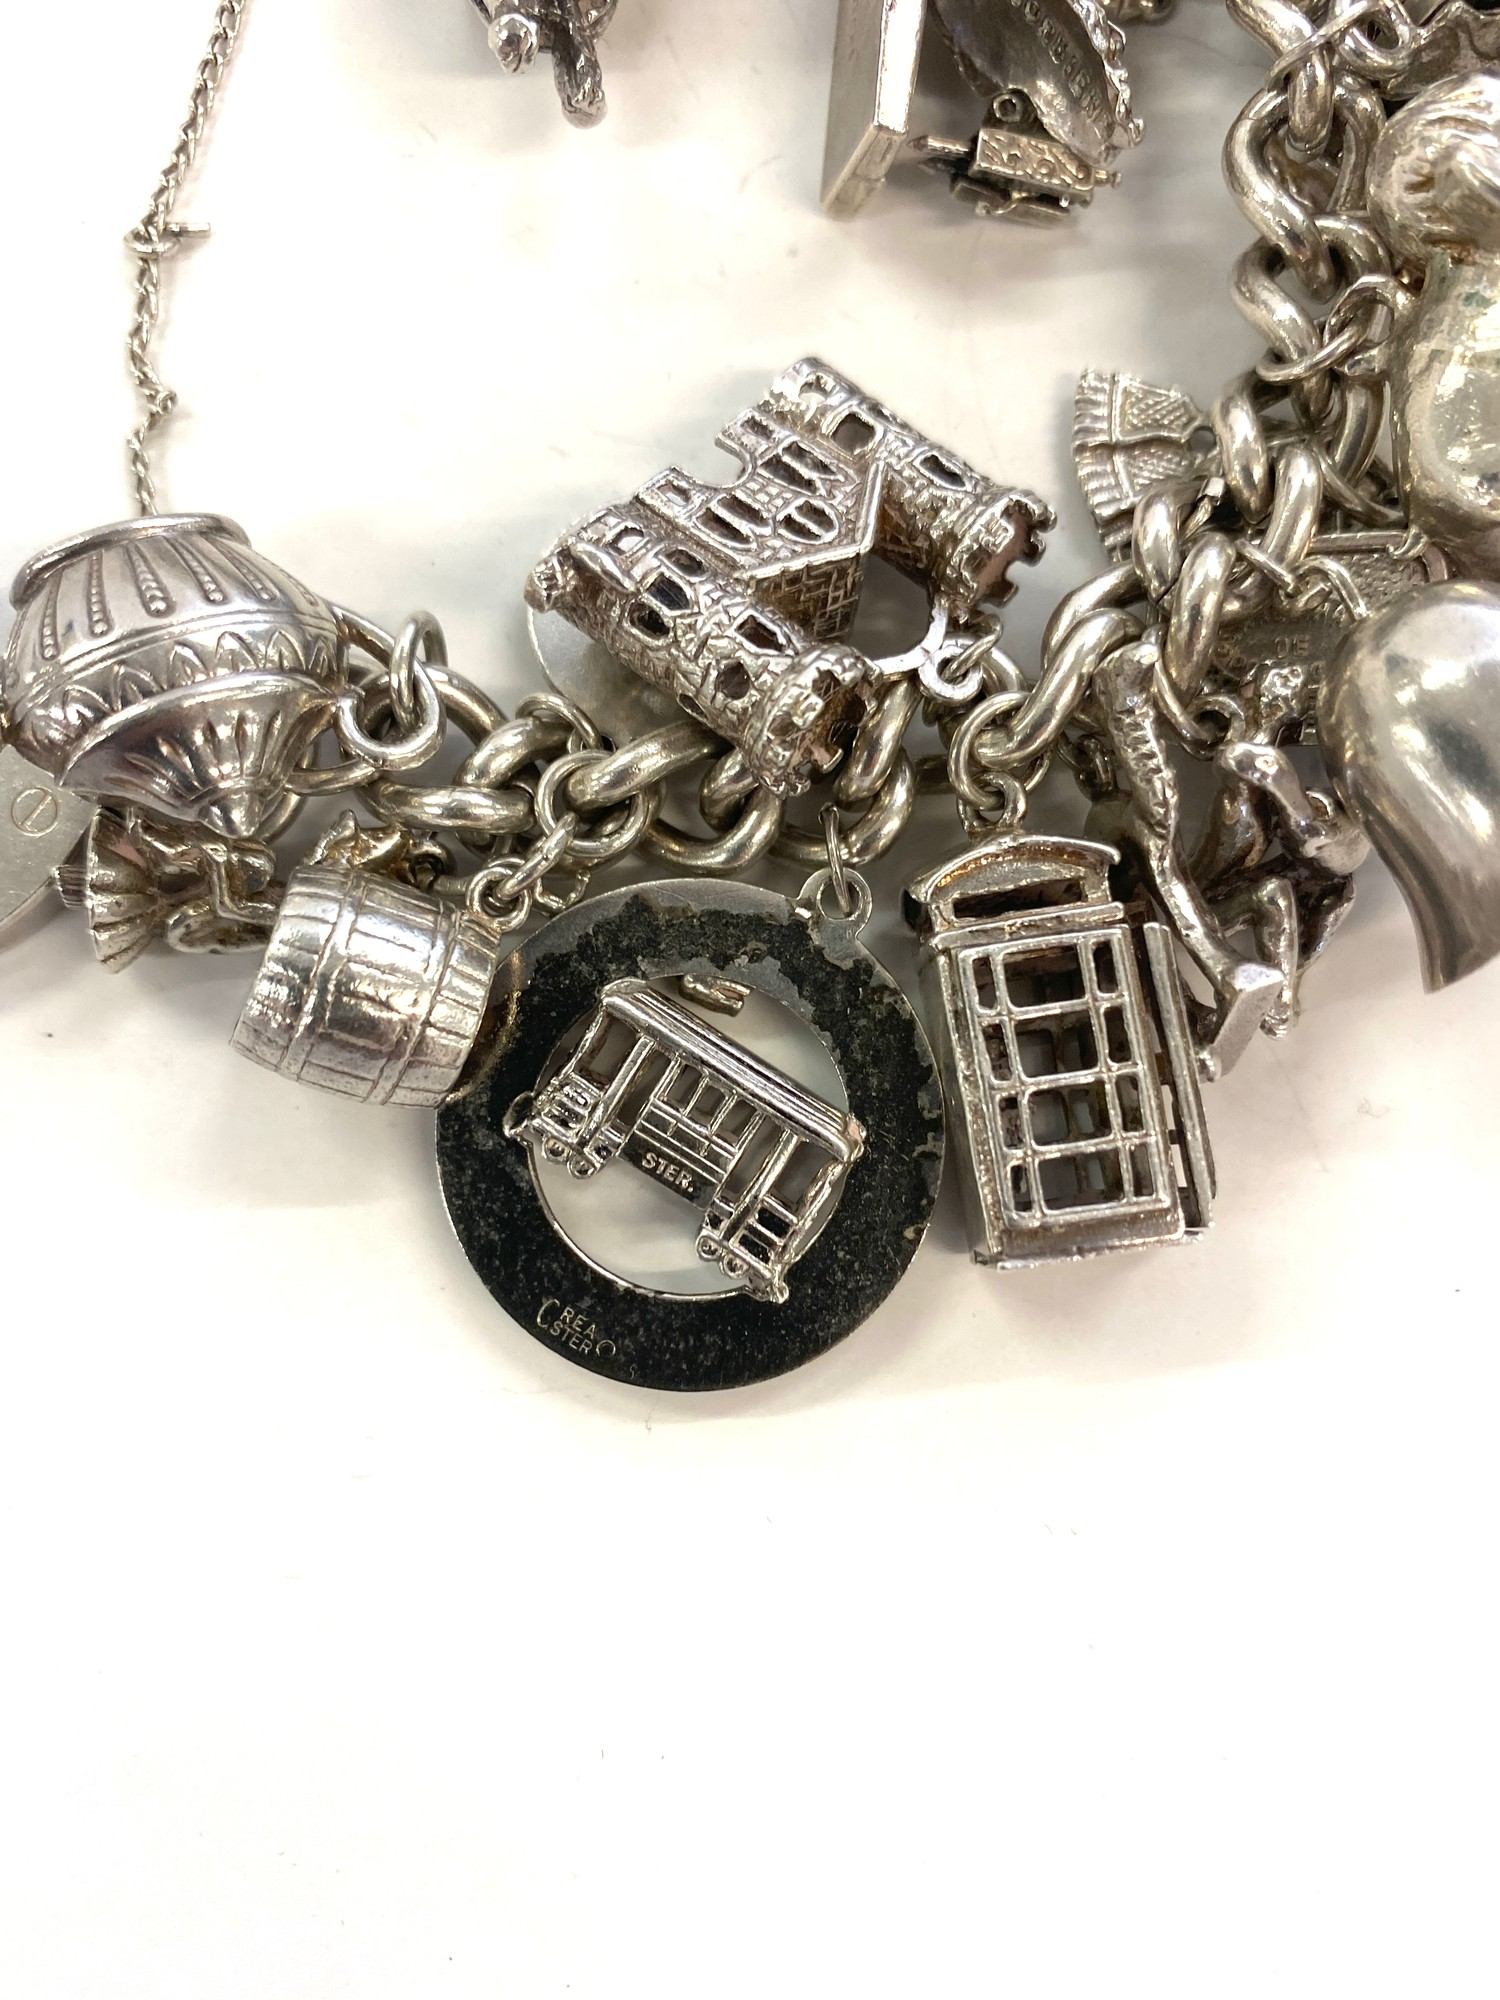 Silver charm bracelet weight approx 184.8g - Image 4 of 4